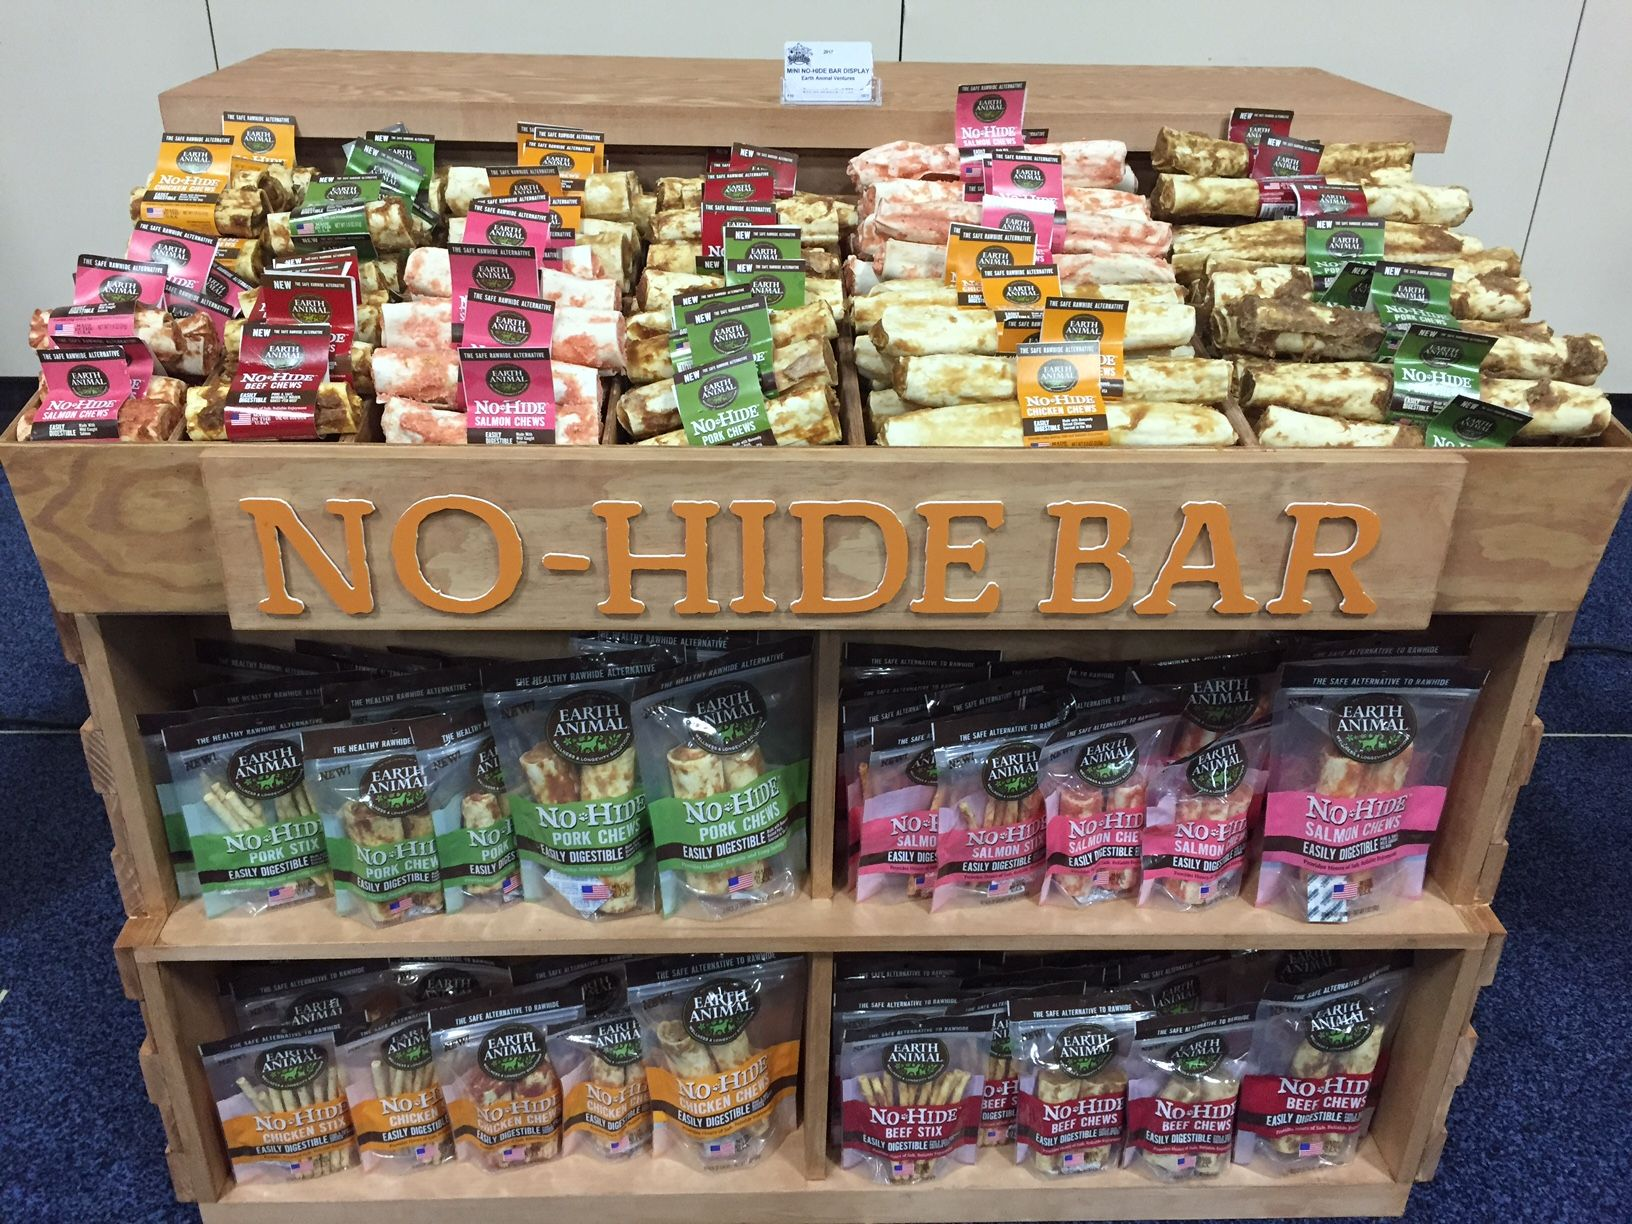 Pin by Earth Animal on NoHide® Wholesome Chews Food